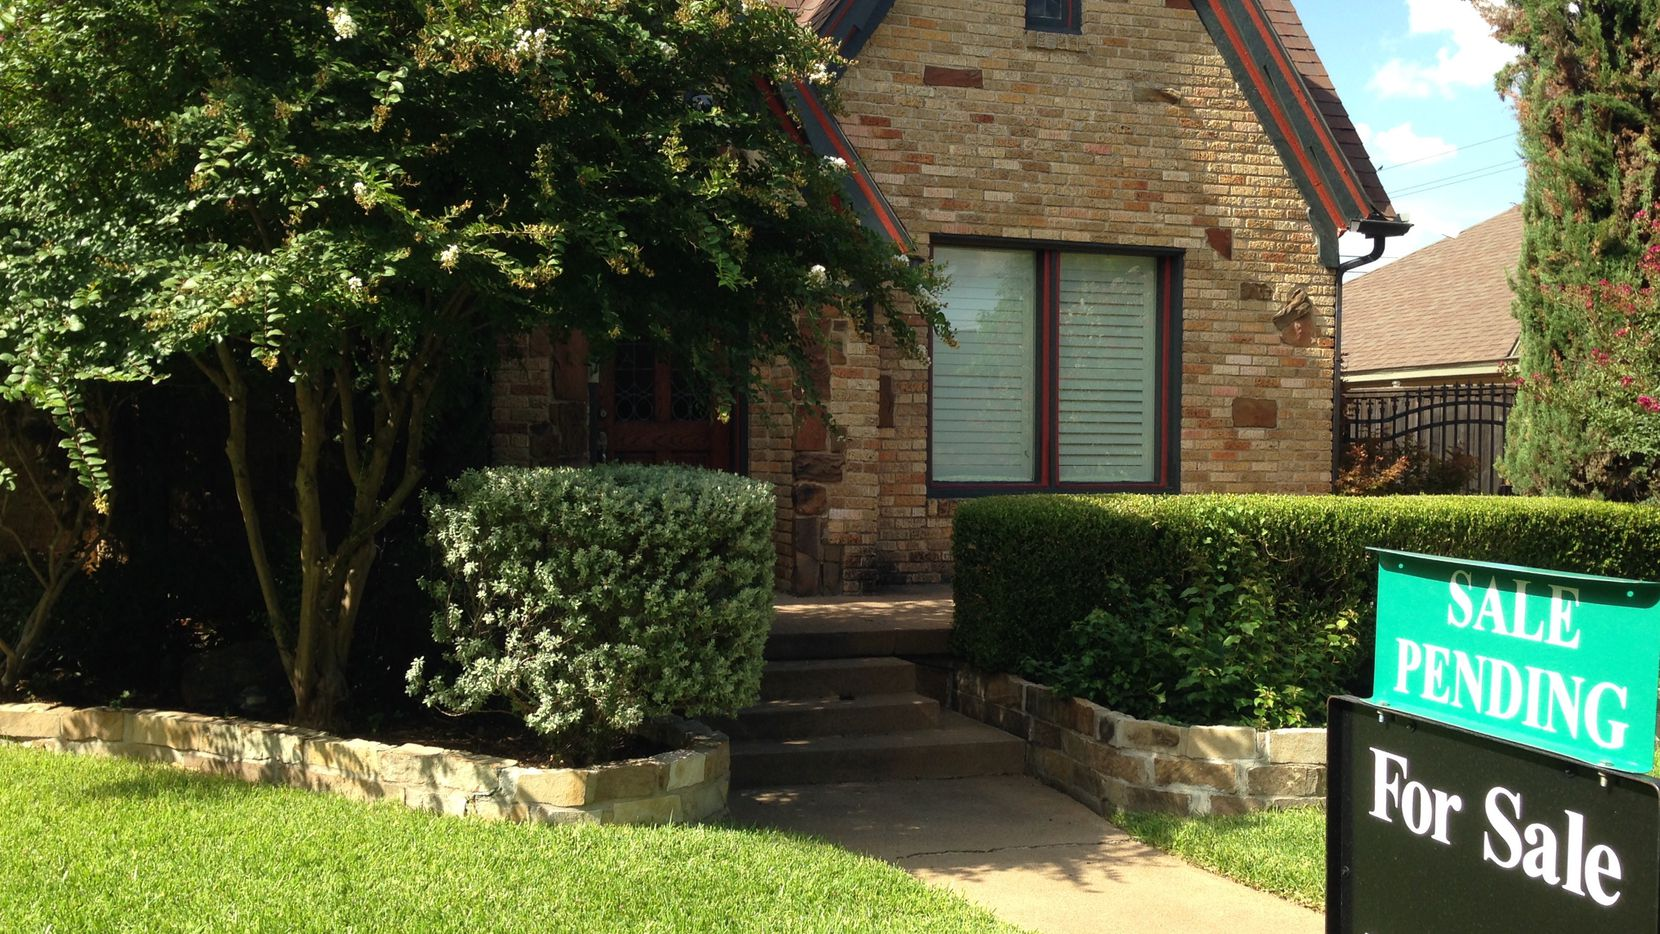 Dallas-Fort Worth home sales are expected to decline slightly in 2019, according to Realtor.com.